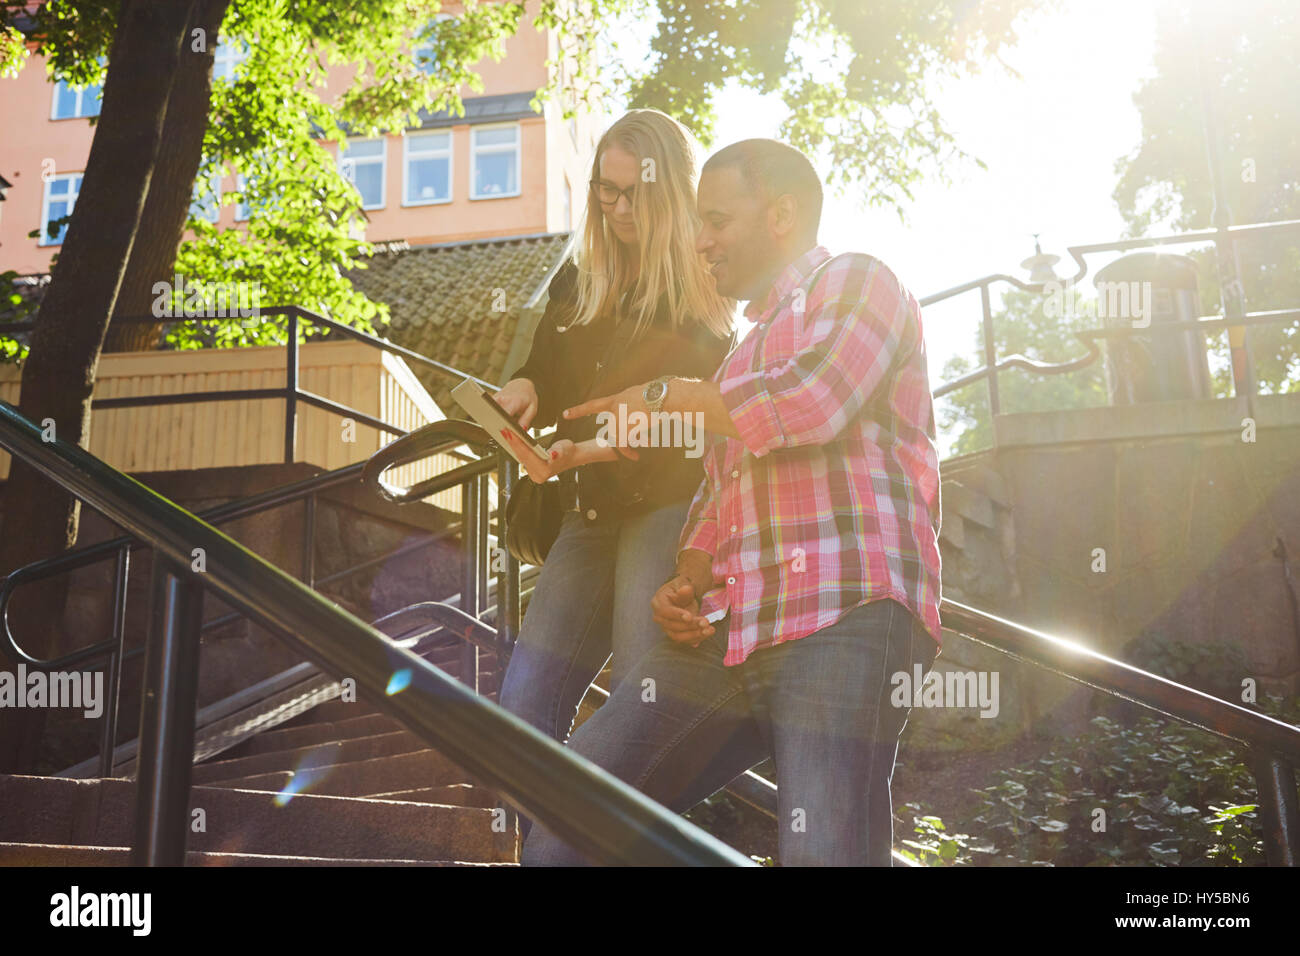 Sweden, Man and woman standing side by side looking at digital tablet in sunlight - Stock Image